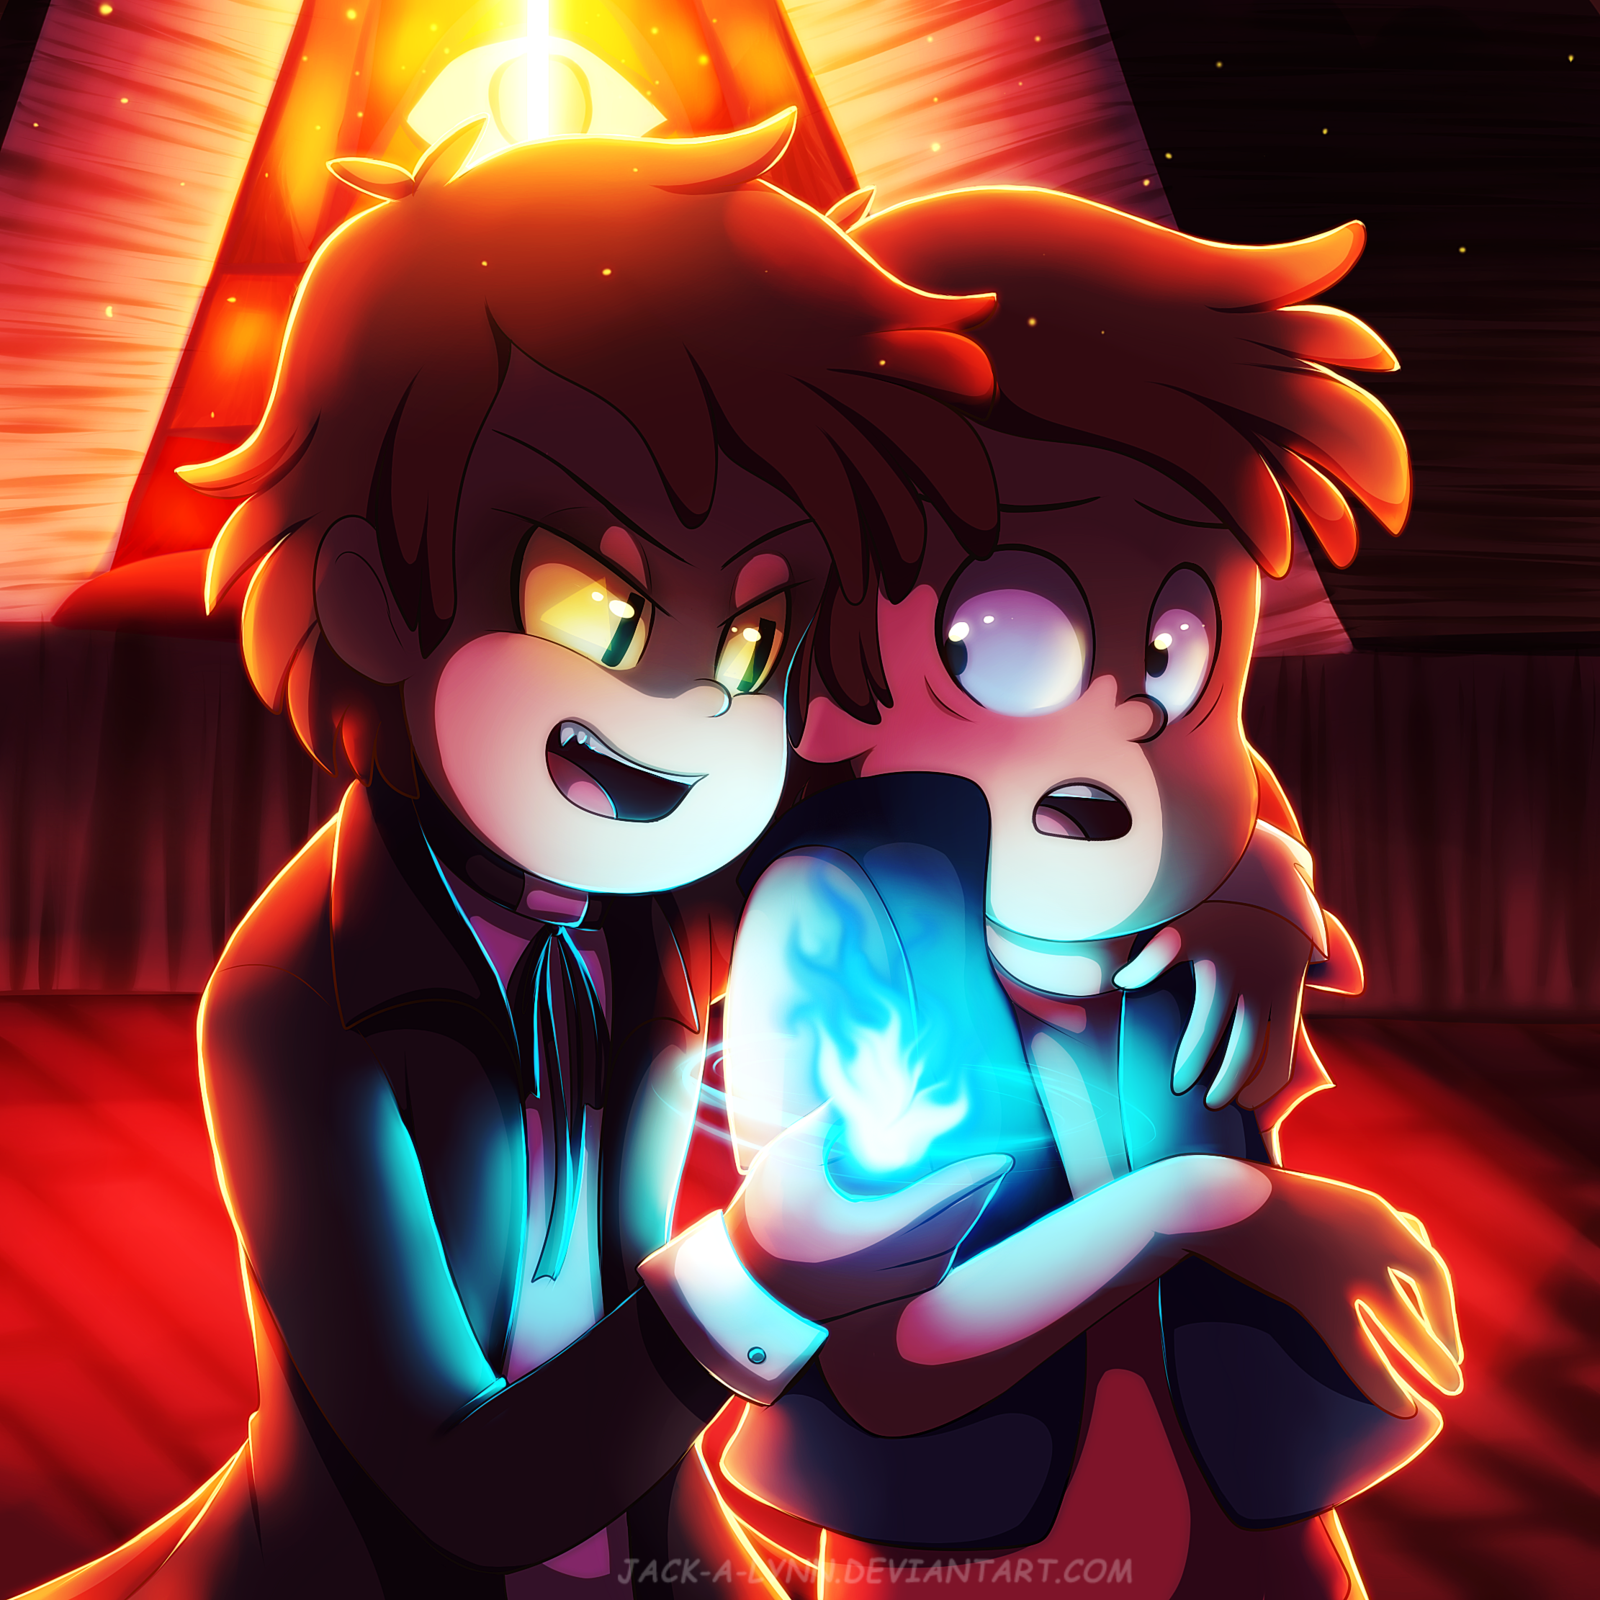 Gravity Falls 2 favourites by StefiNJY on DeviantArt.